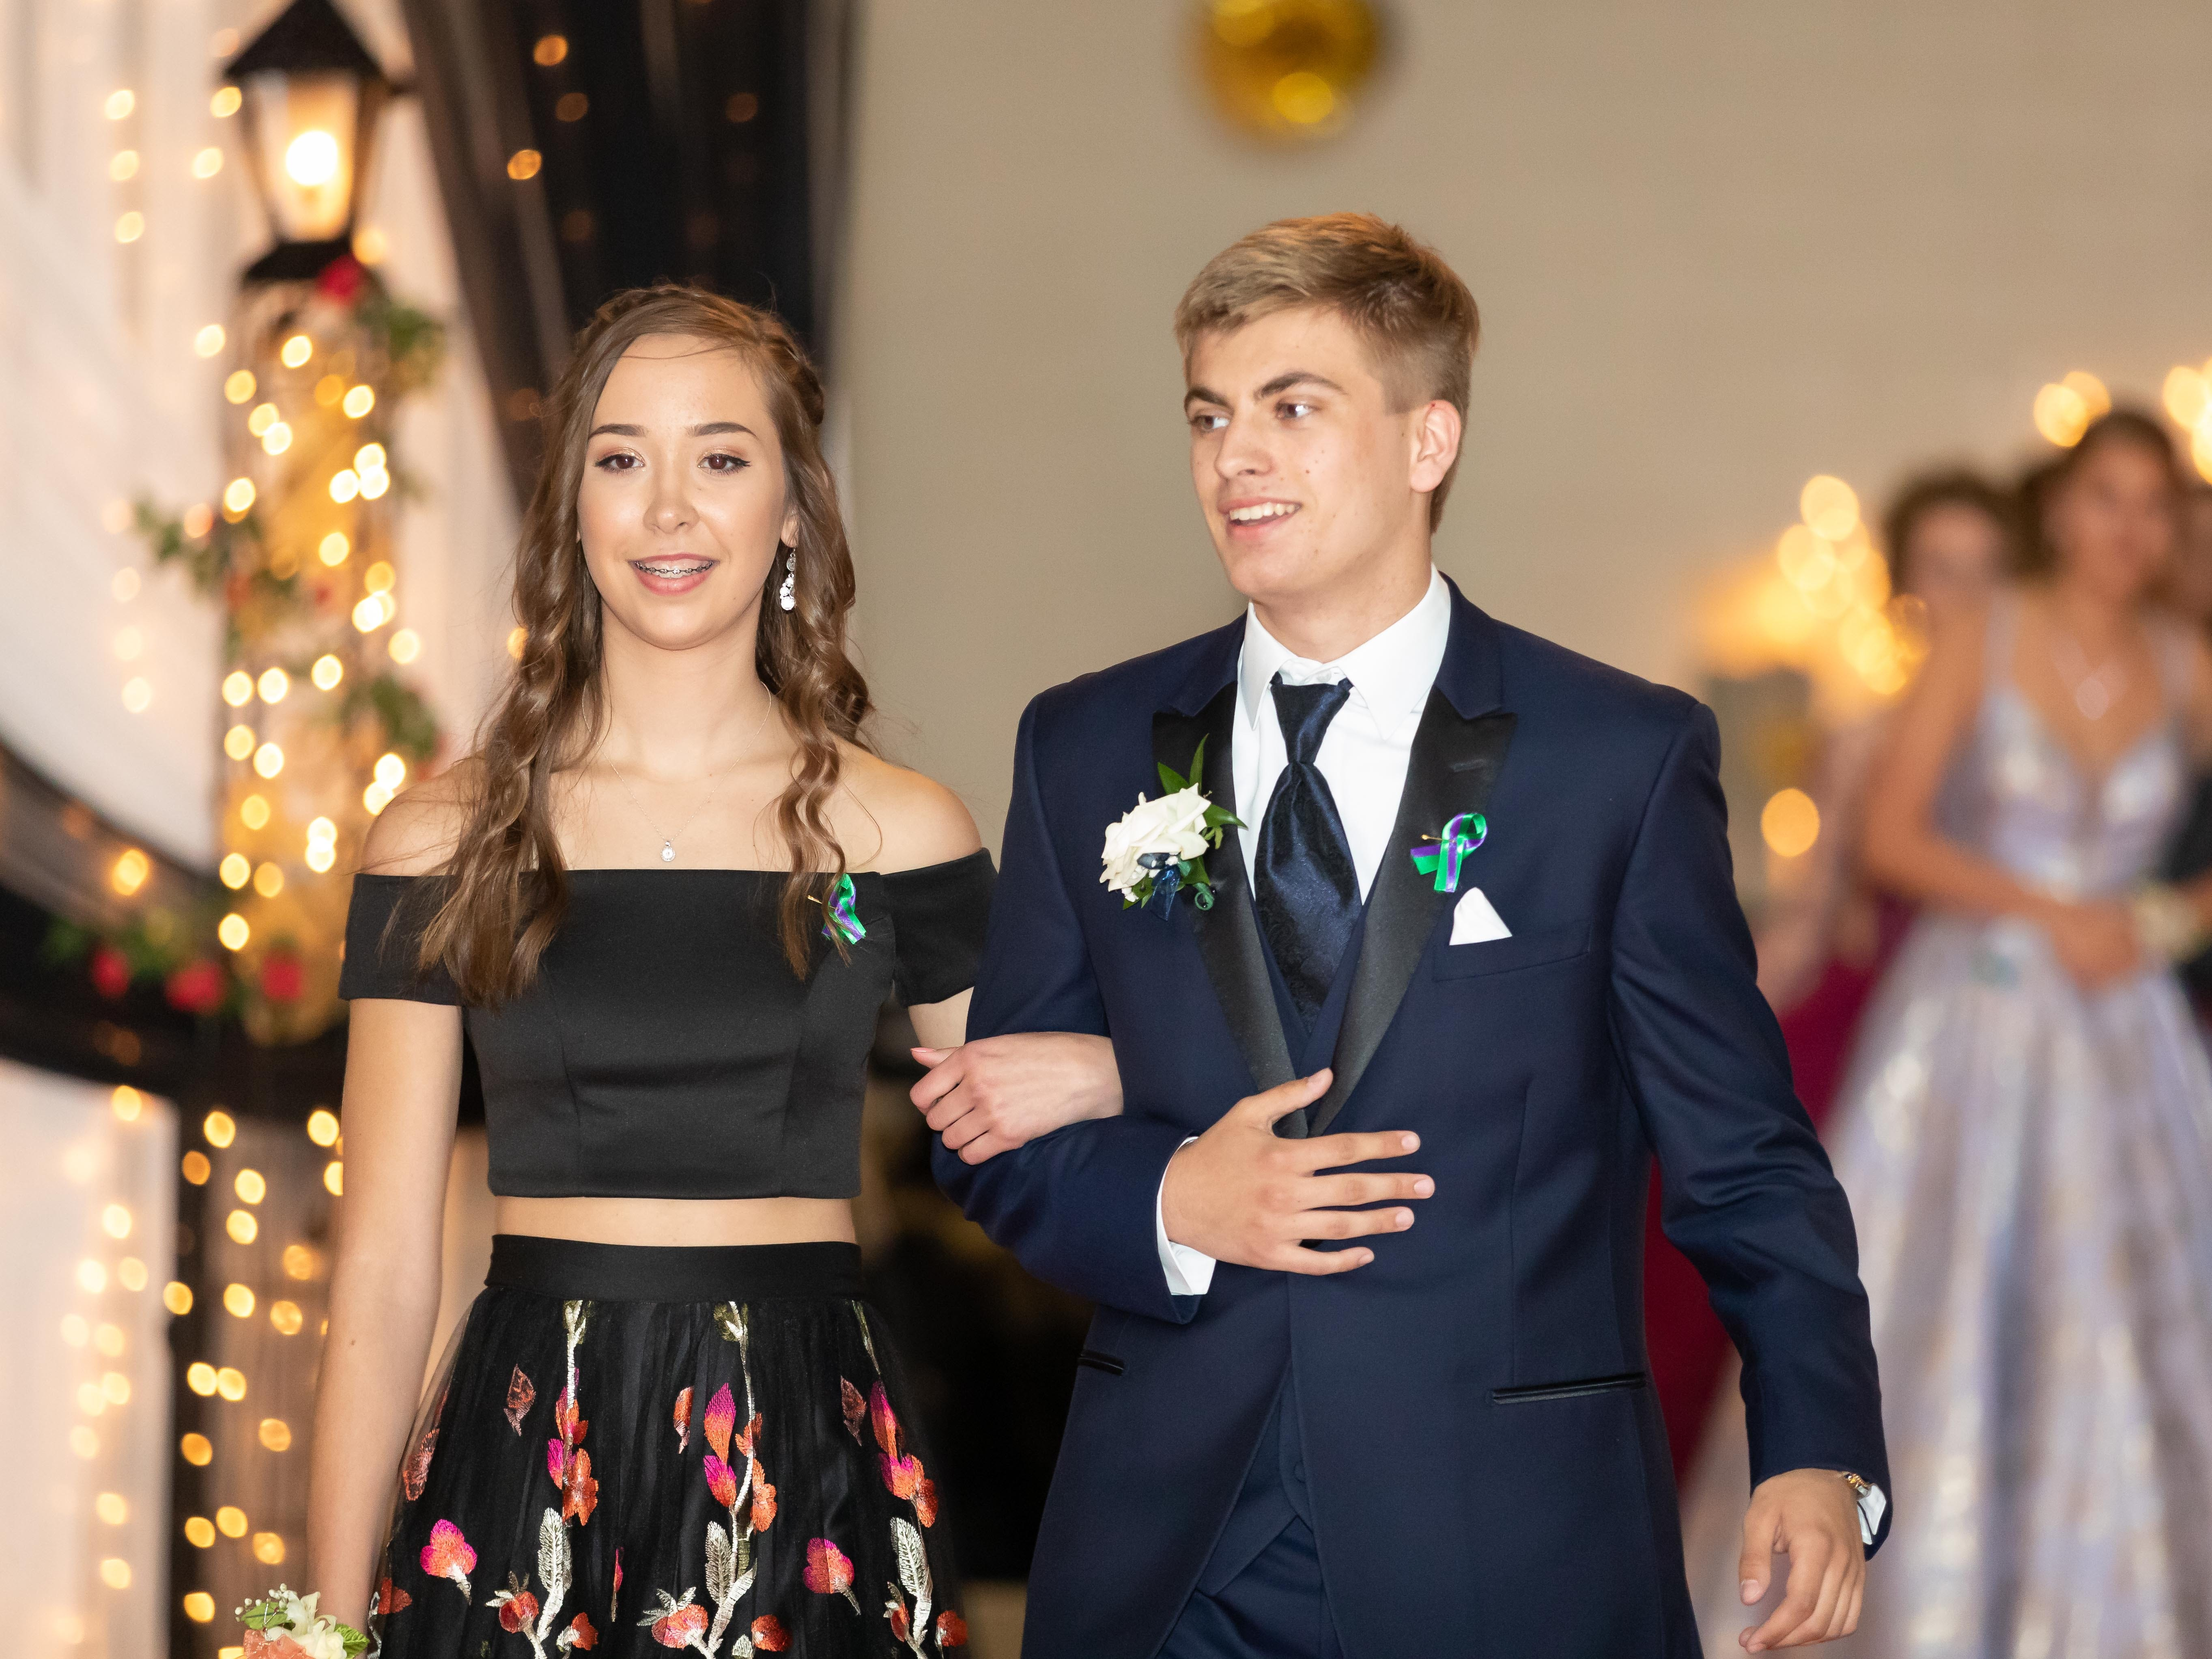 Students participate in the grand march during the Nekoosa High School Prom on Saturday, April 27, 2019, at Nekoosa High School.